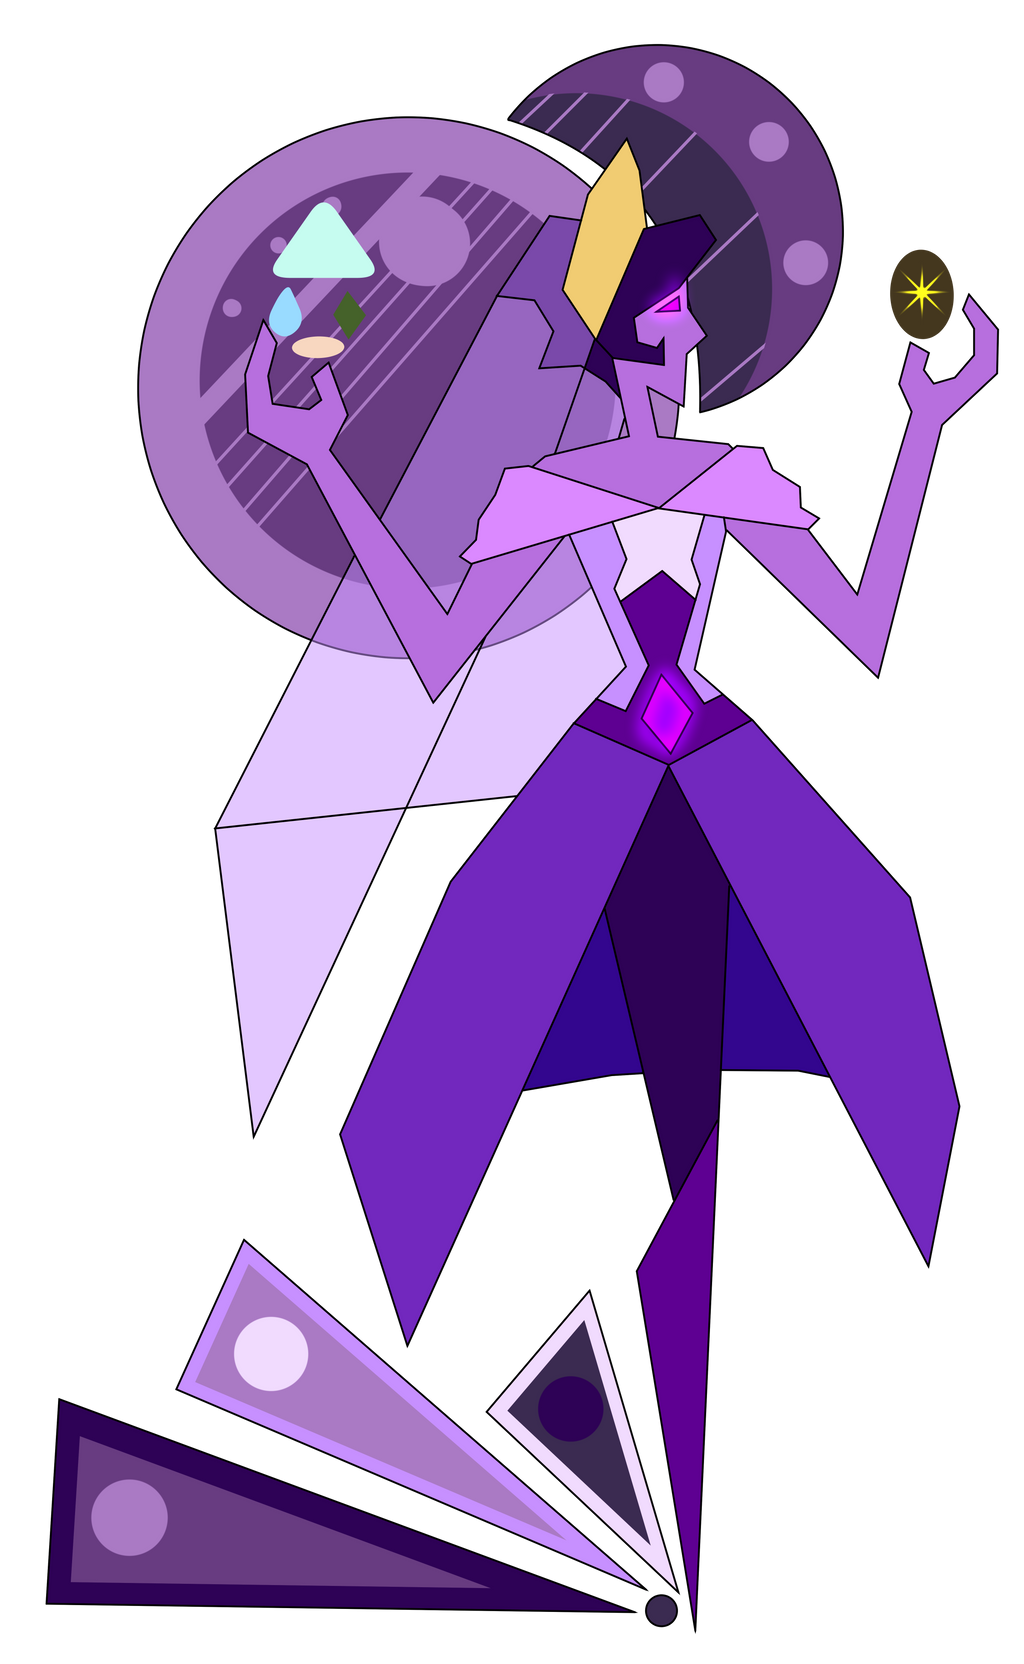 Russian purple diamond mural re do by kydee on deviantart for Yellow diamond mural